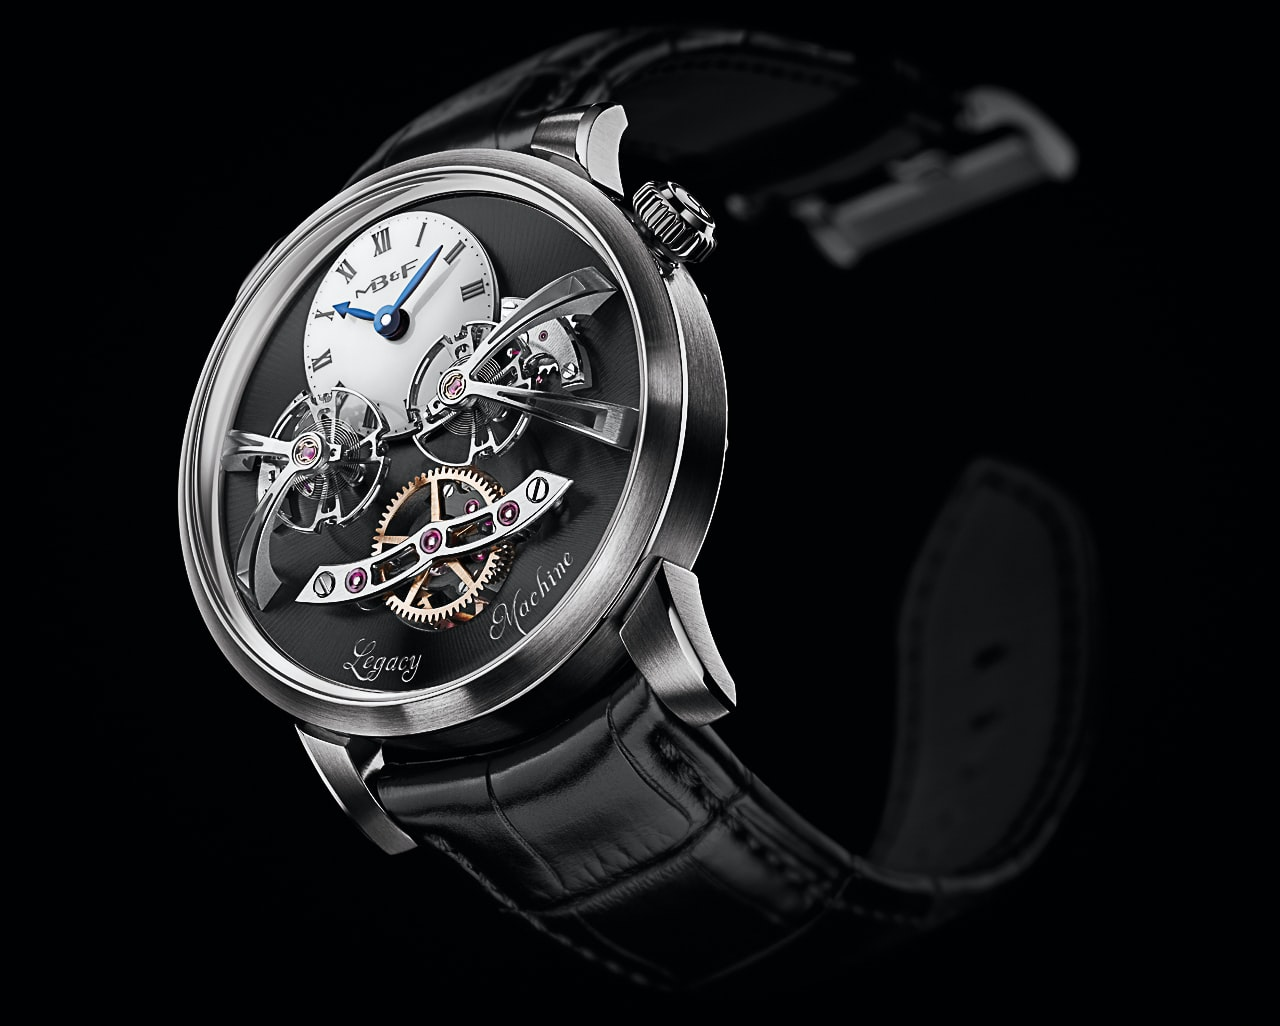 Introducing The MB&F Legacy Machine Two (Full Specs, Pictures, Historical Information, & Pricing)